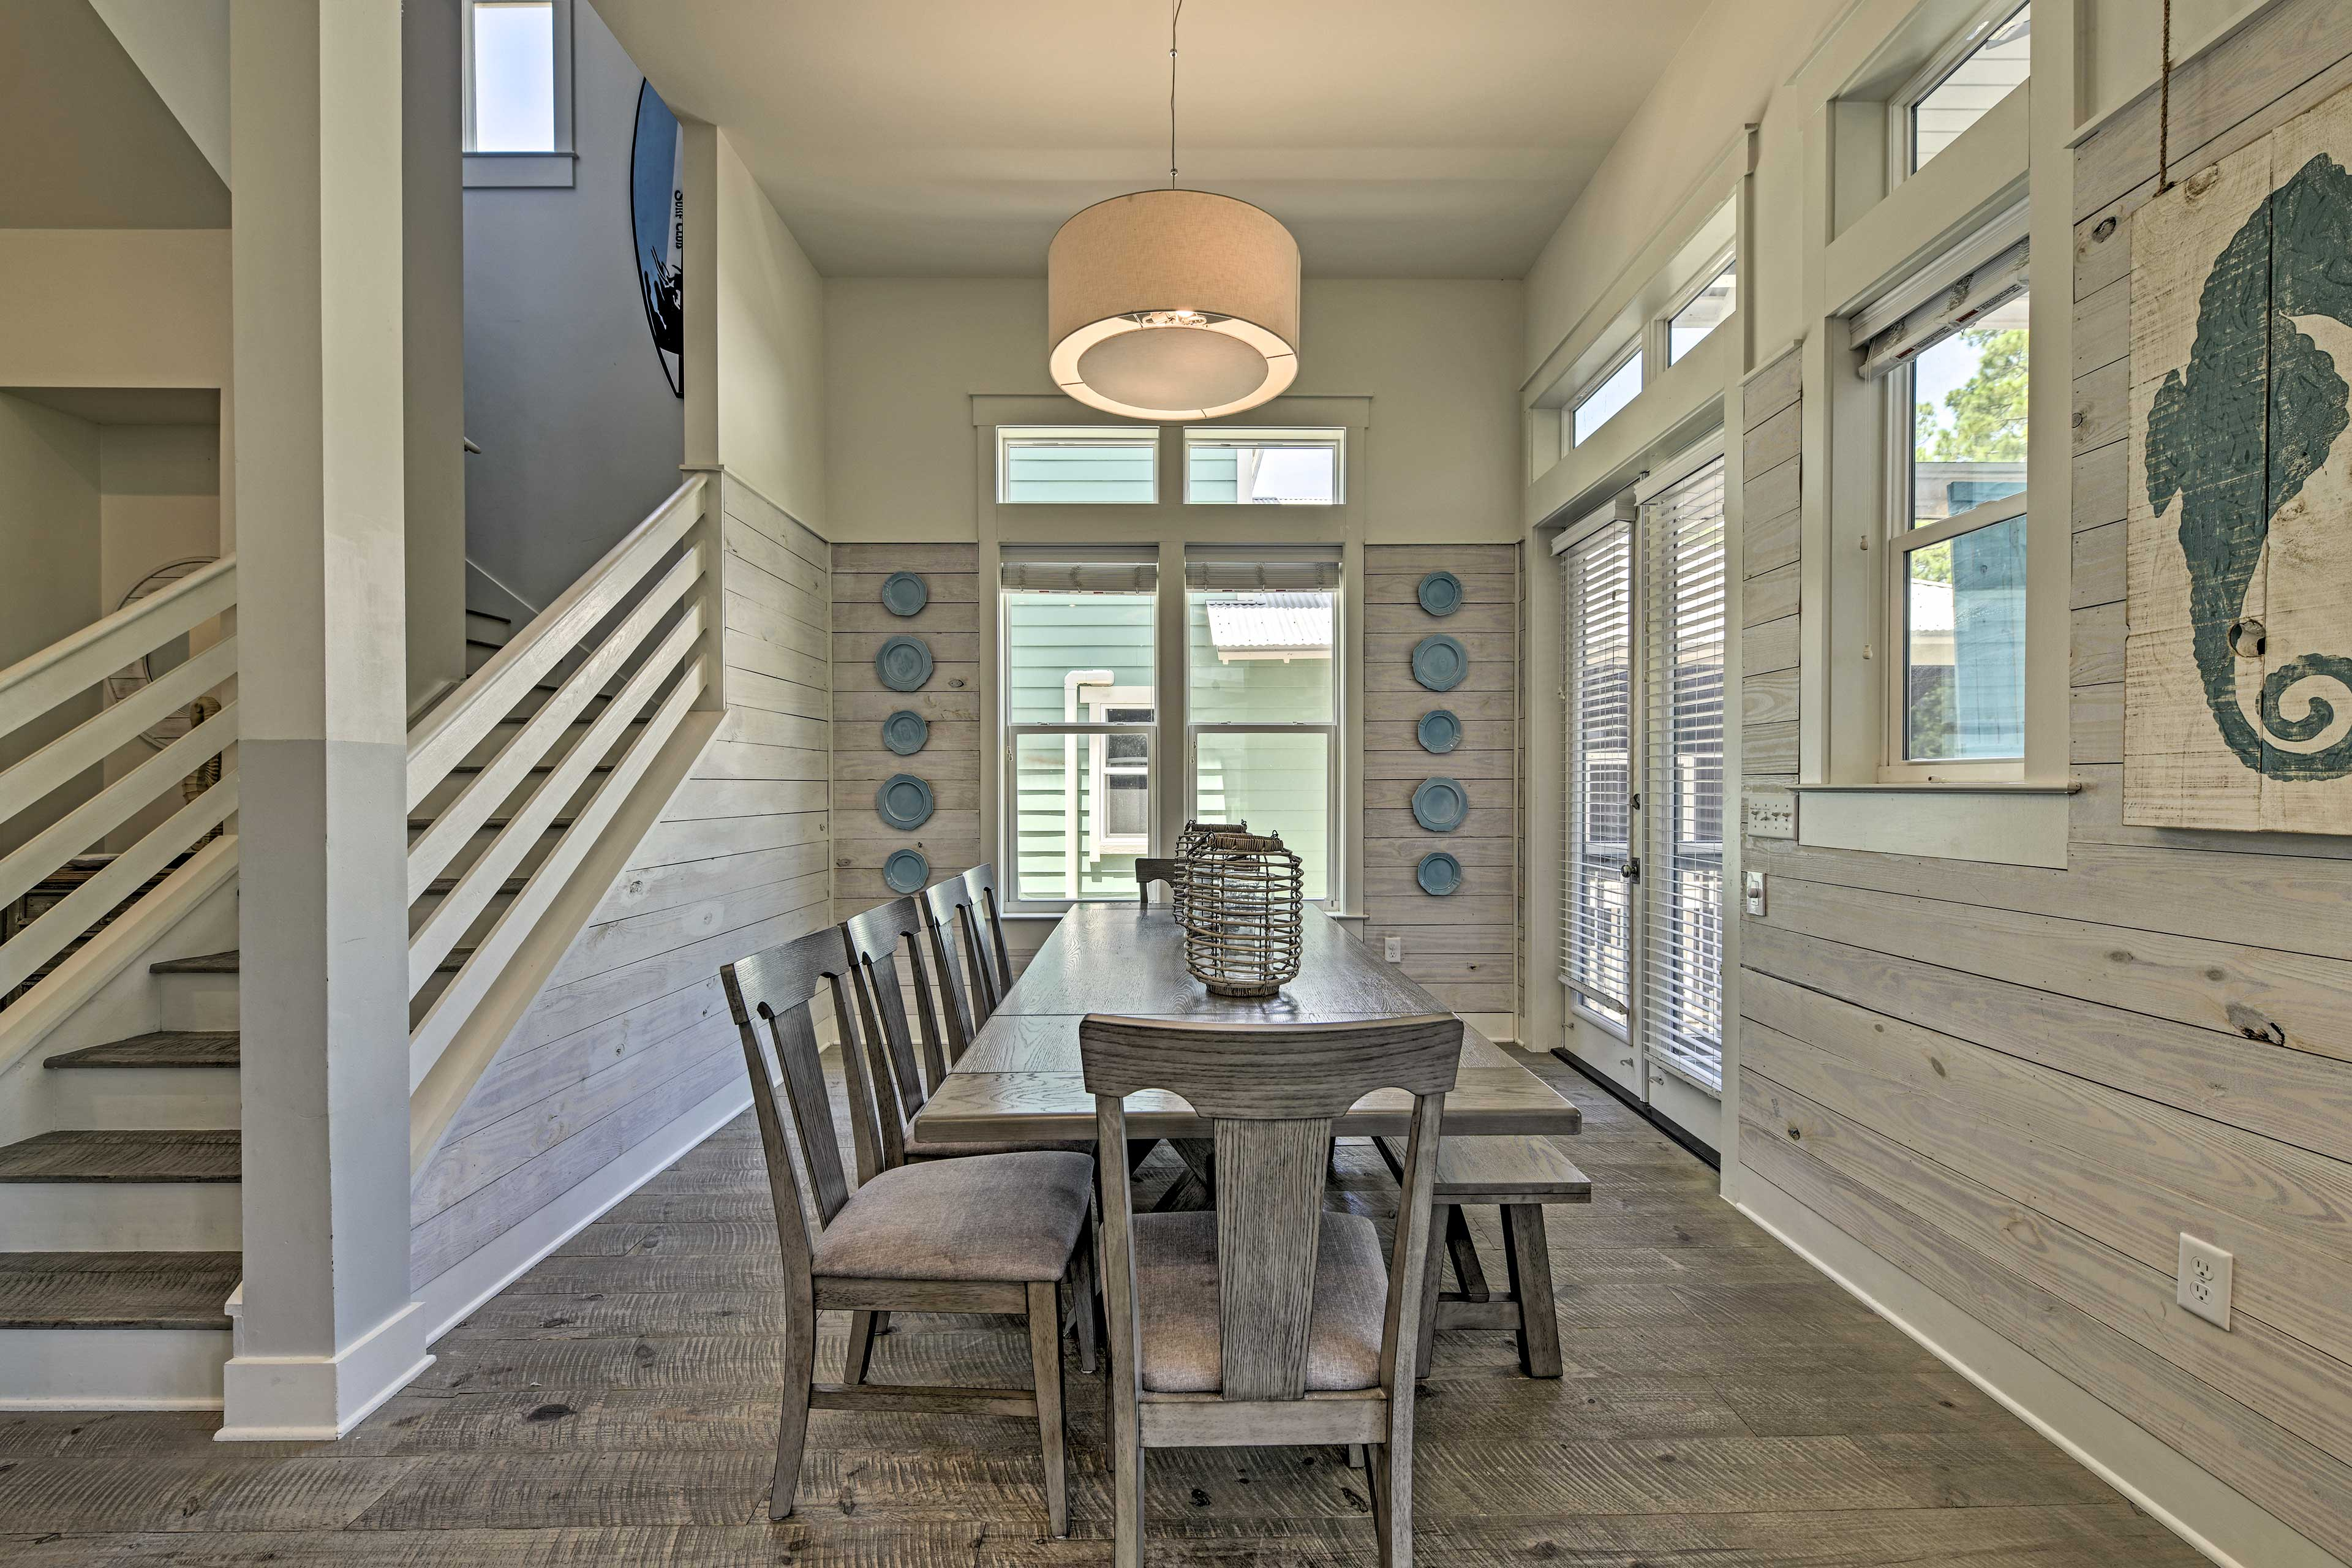 Enjoy a family-style meal at the farmhouse dining table.